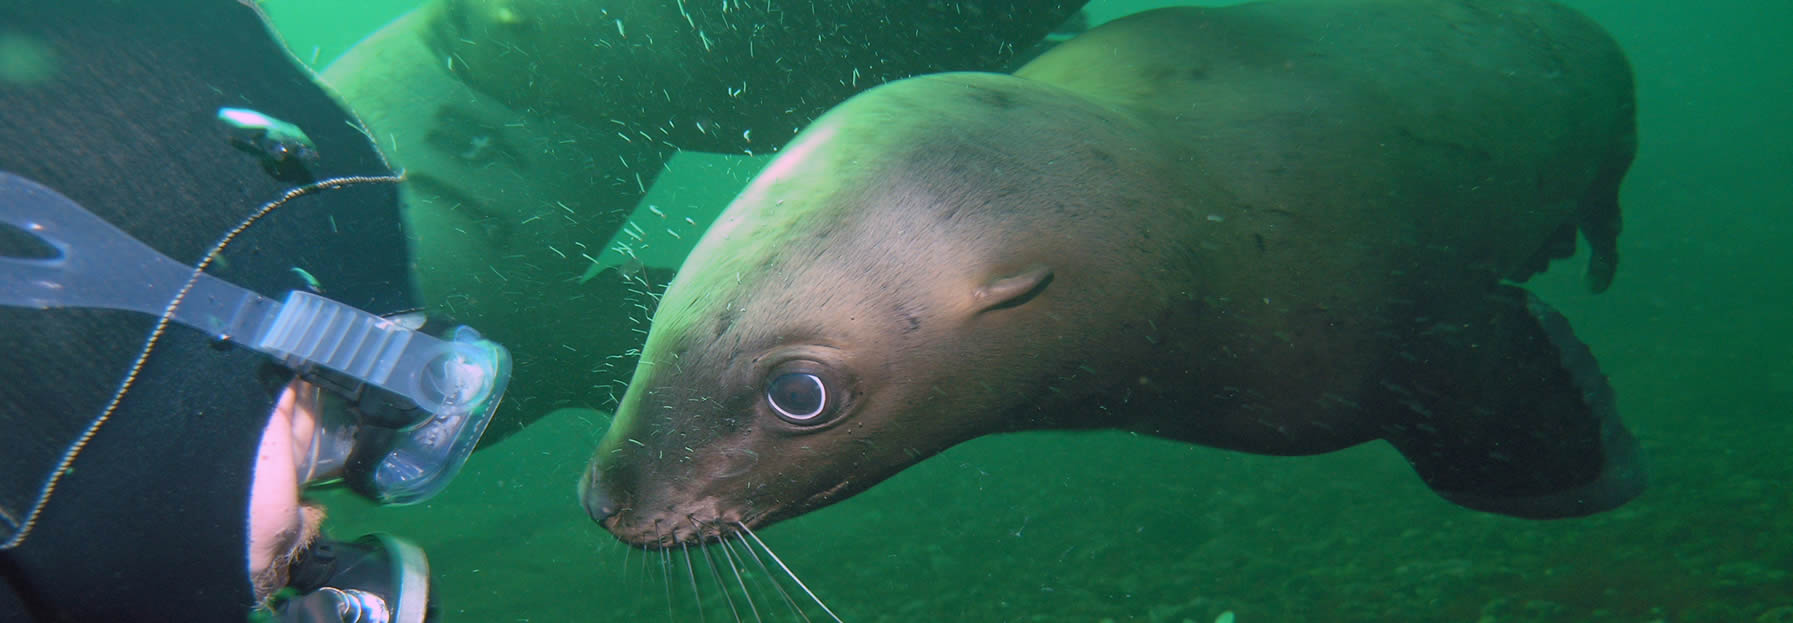 California sea lion – Diving Lessons and Scuba Certification